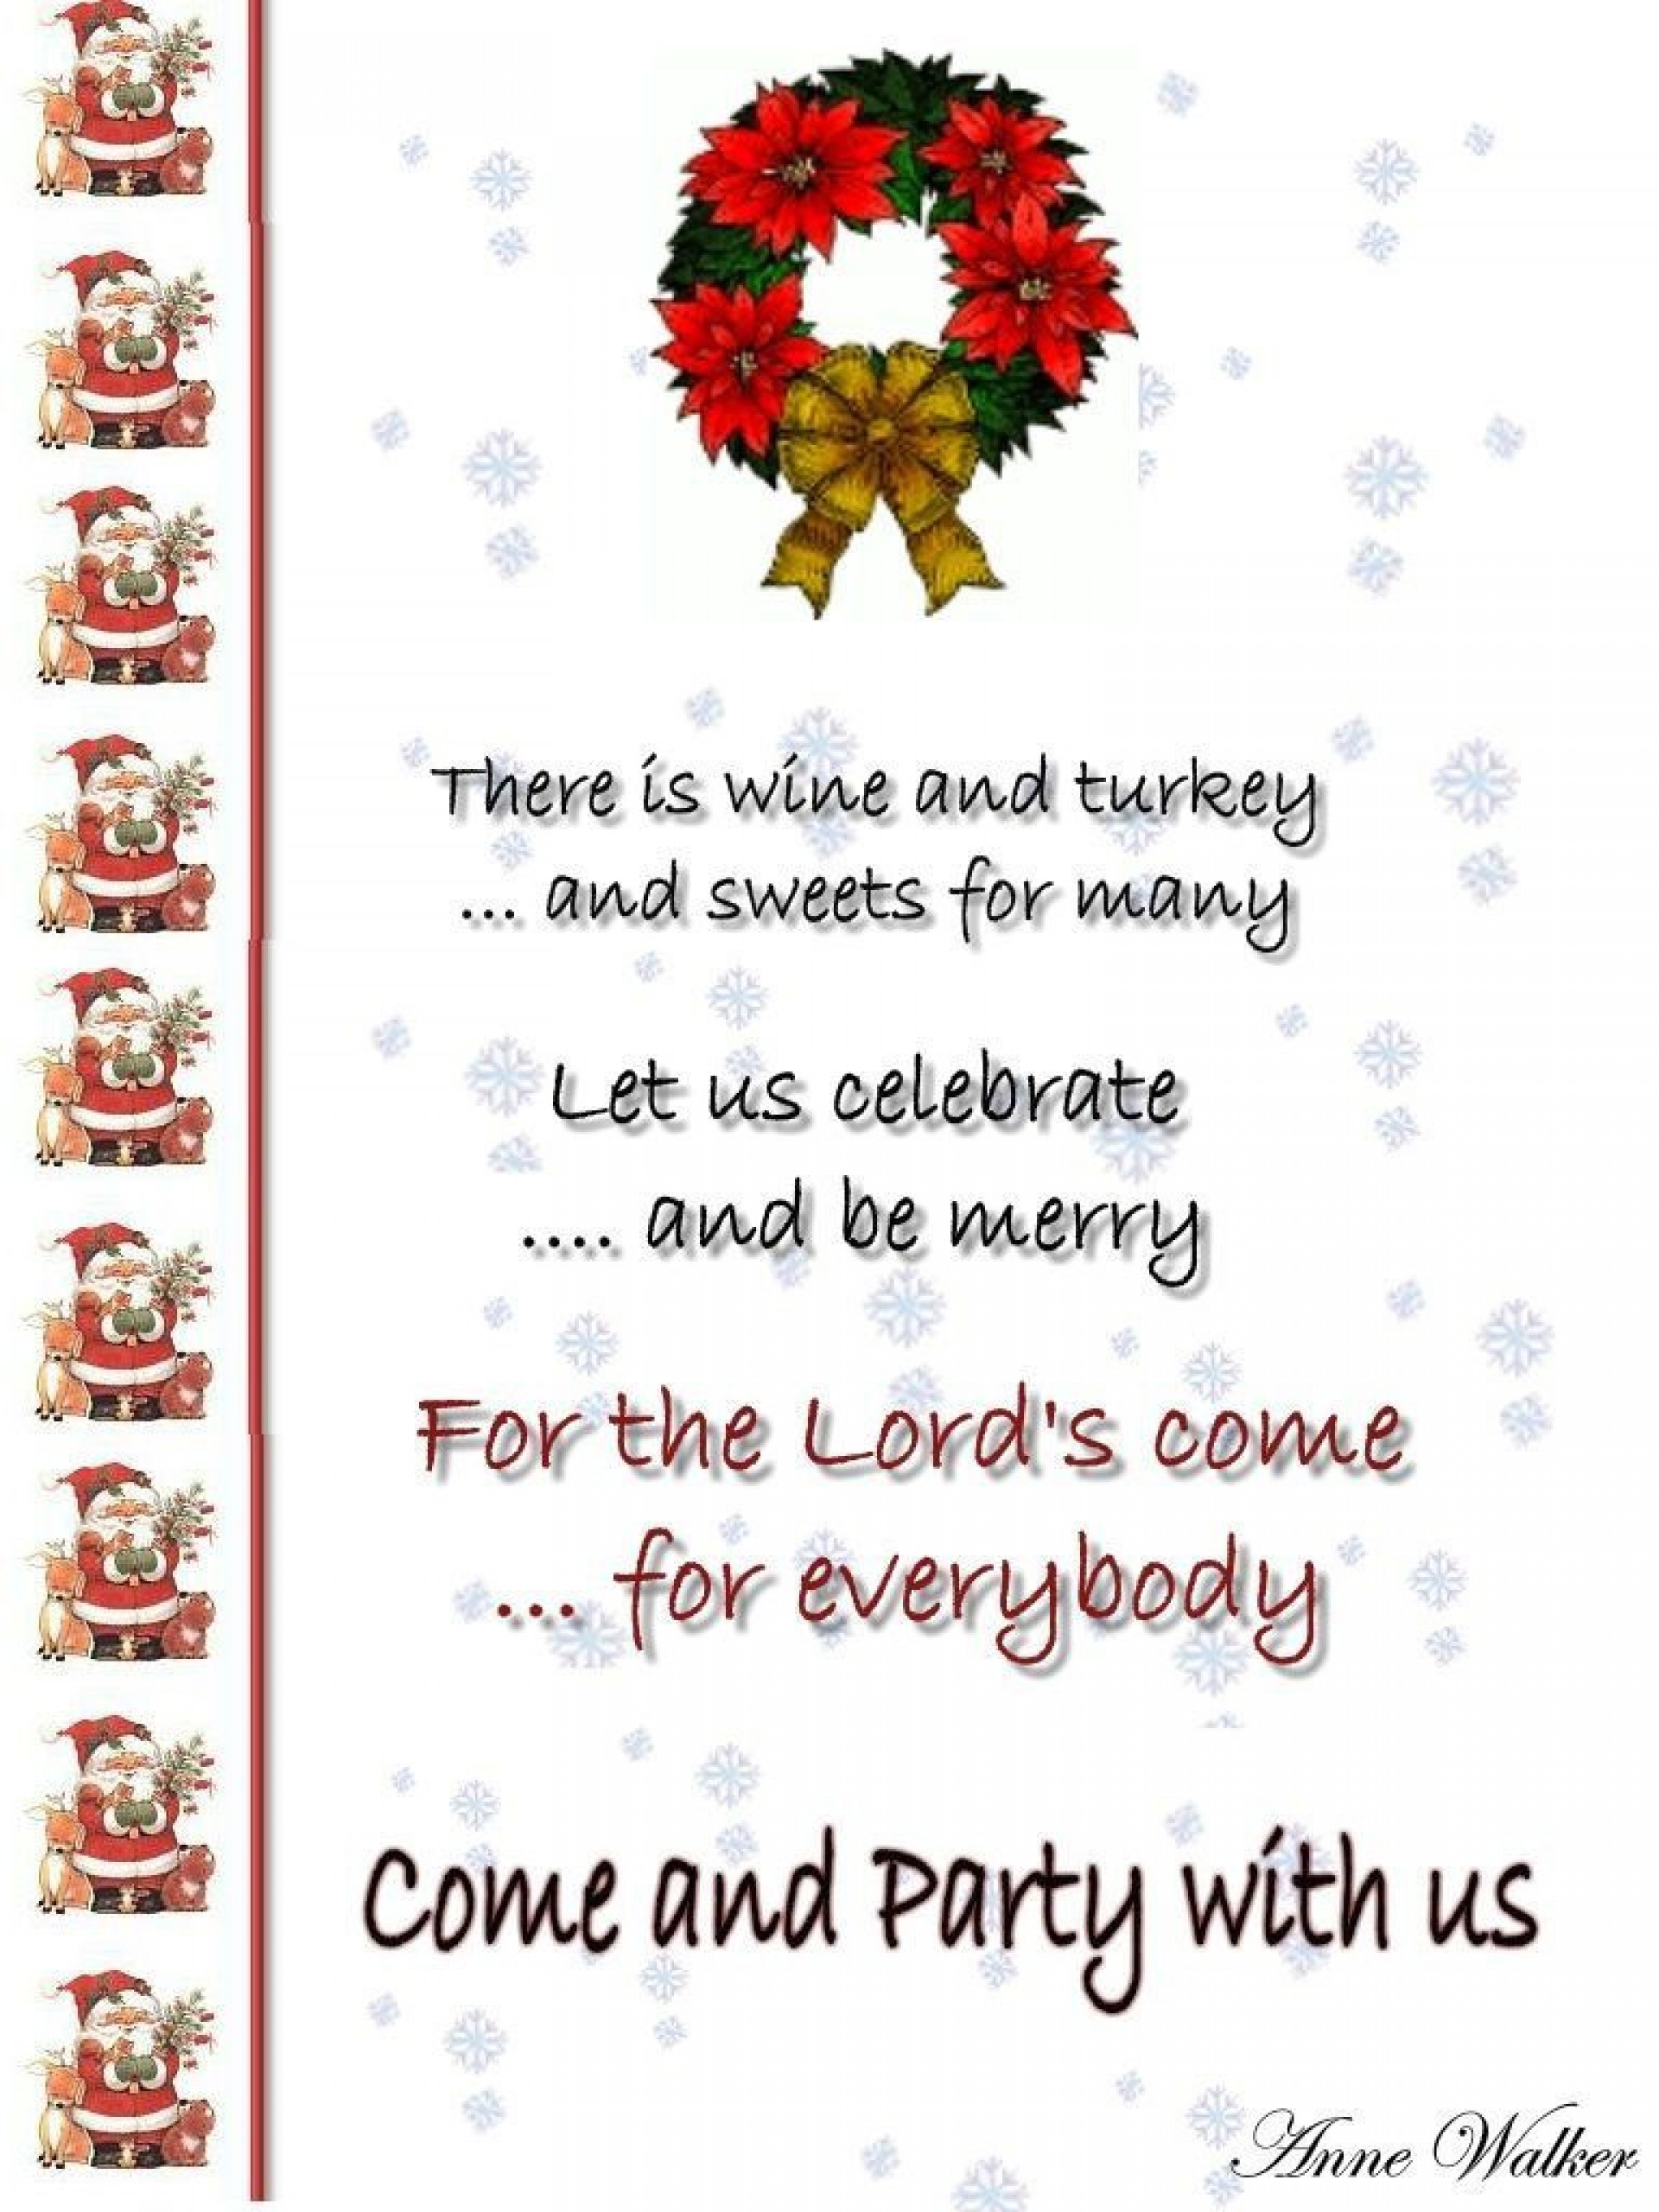 004 Impressive Office Christma Party Invitation Wording Sample Highest Clarity  Holiday Example1920